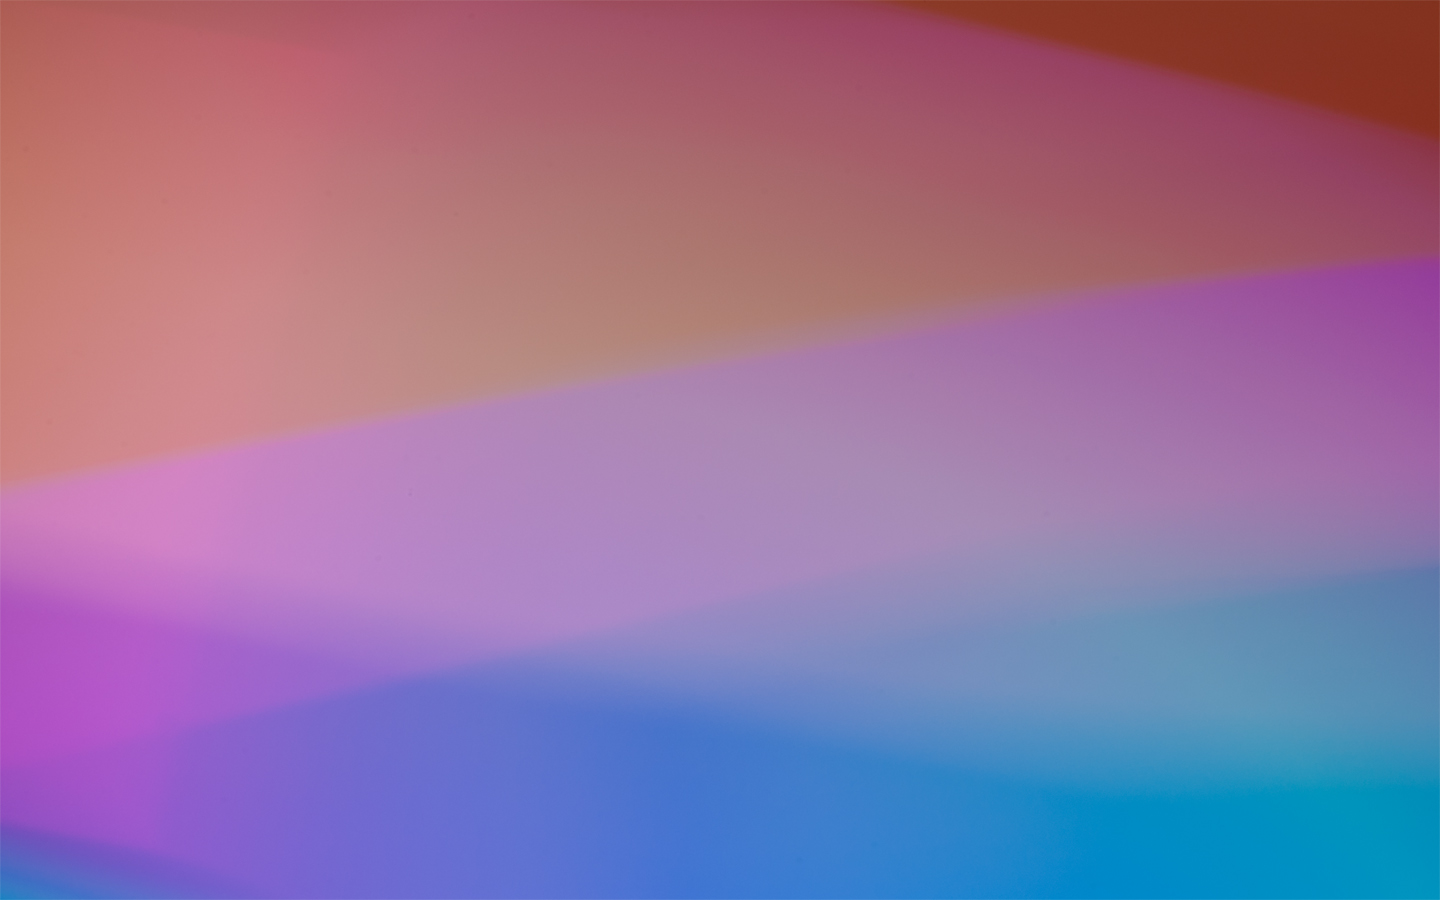 Simple coloured wallpaper for Macbook Air 13 inch by Edmonam on 1440x900